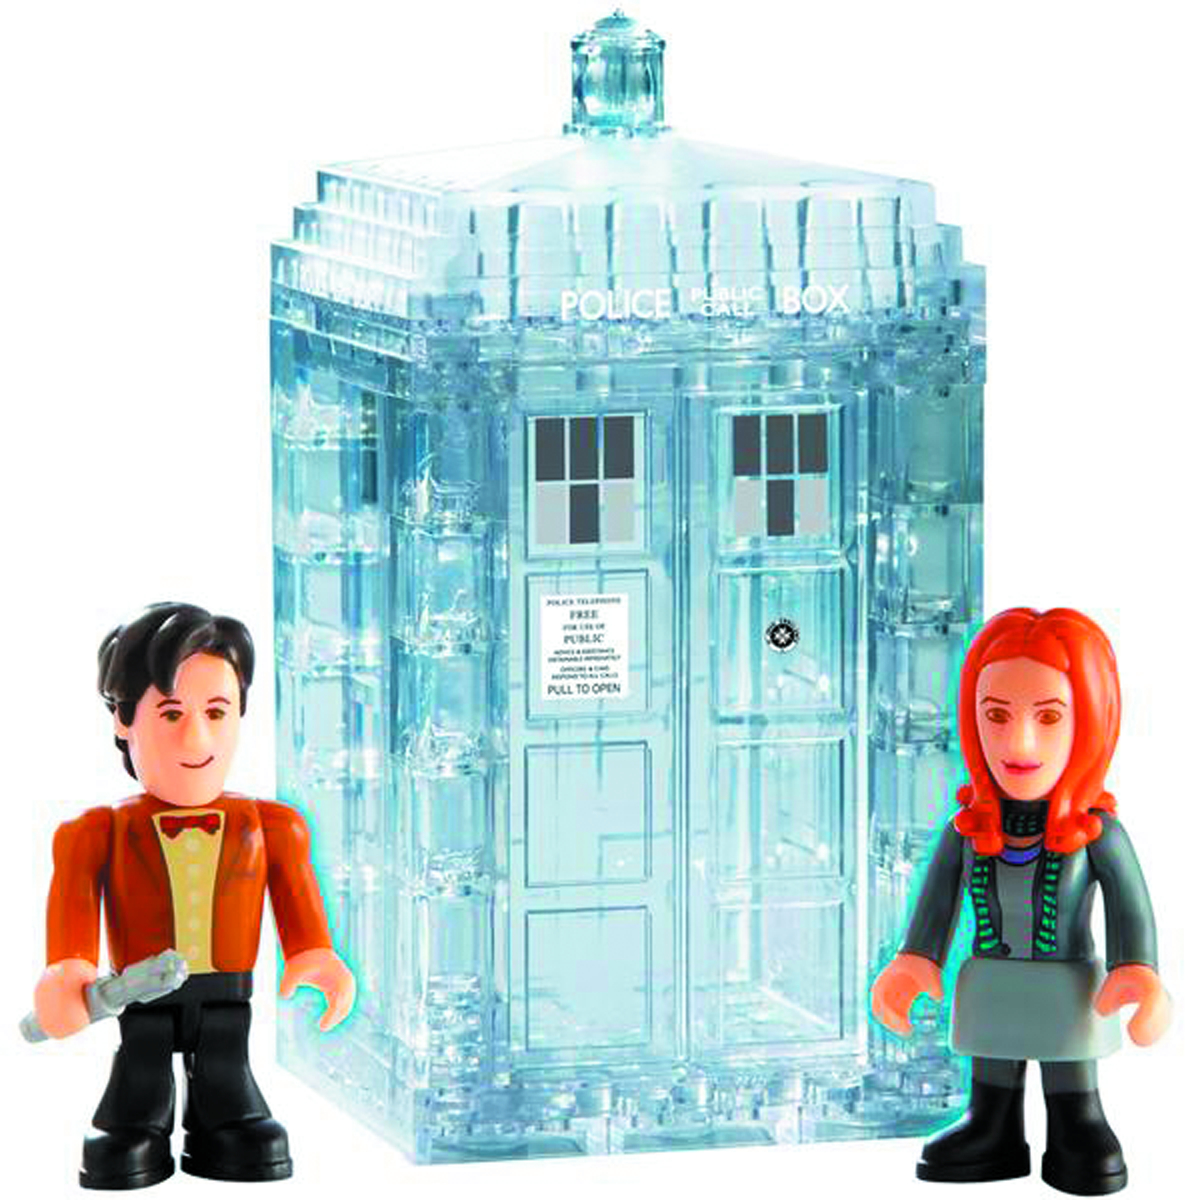 DOCTOR WHO CHAR BUILDING TARDIS DEMAT SET